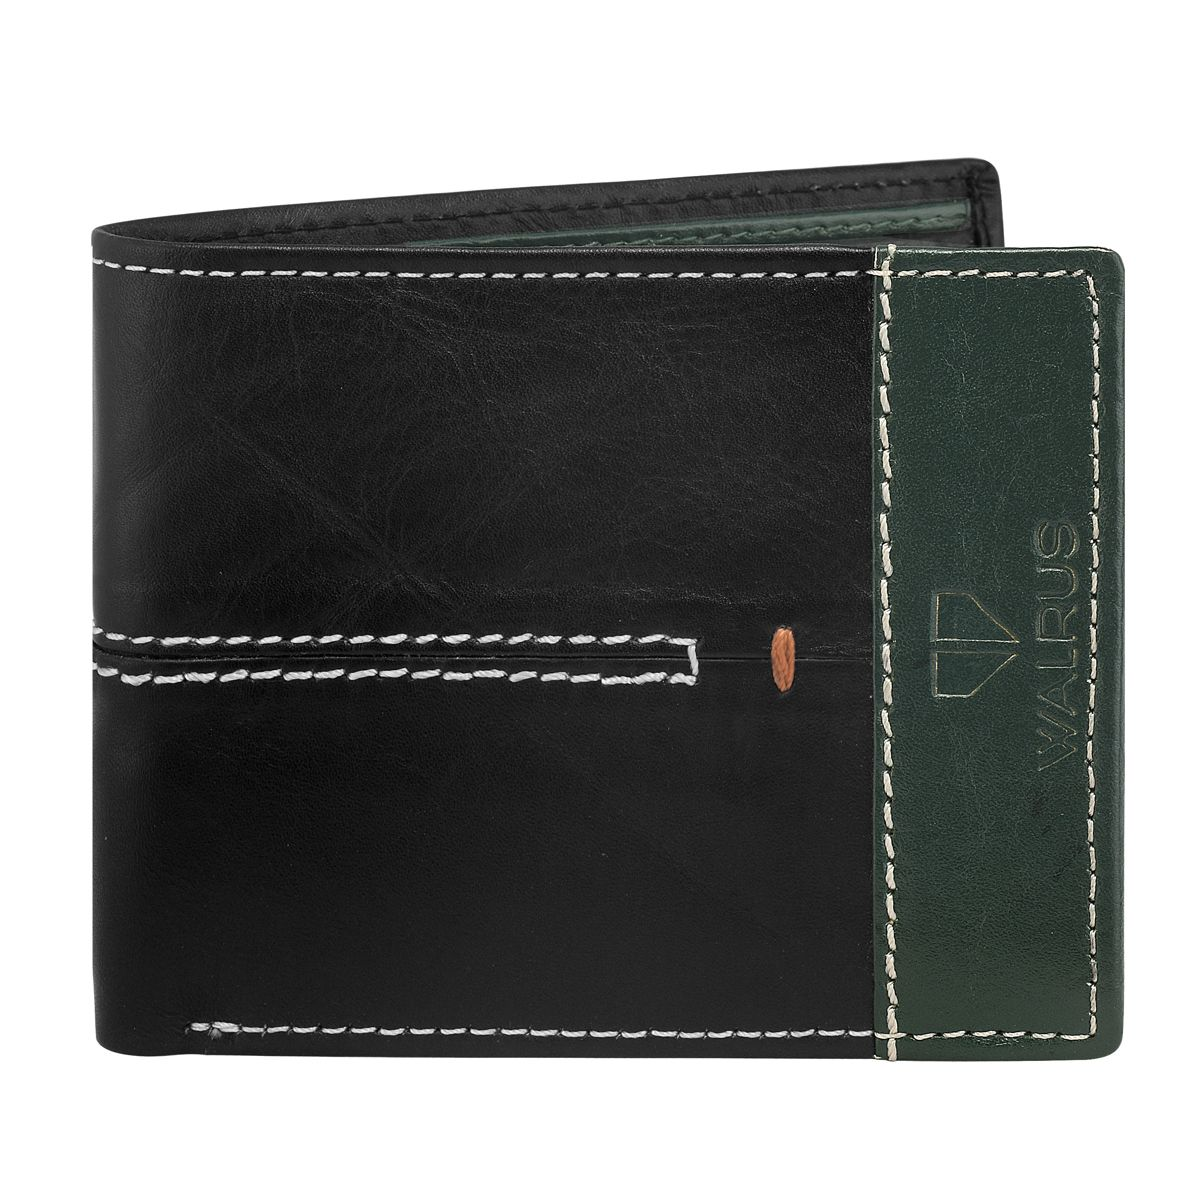 Walrus Marverick Black & Green Color Men Leather Wallet- WW-MVK-II-0204